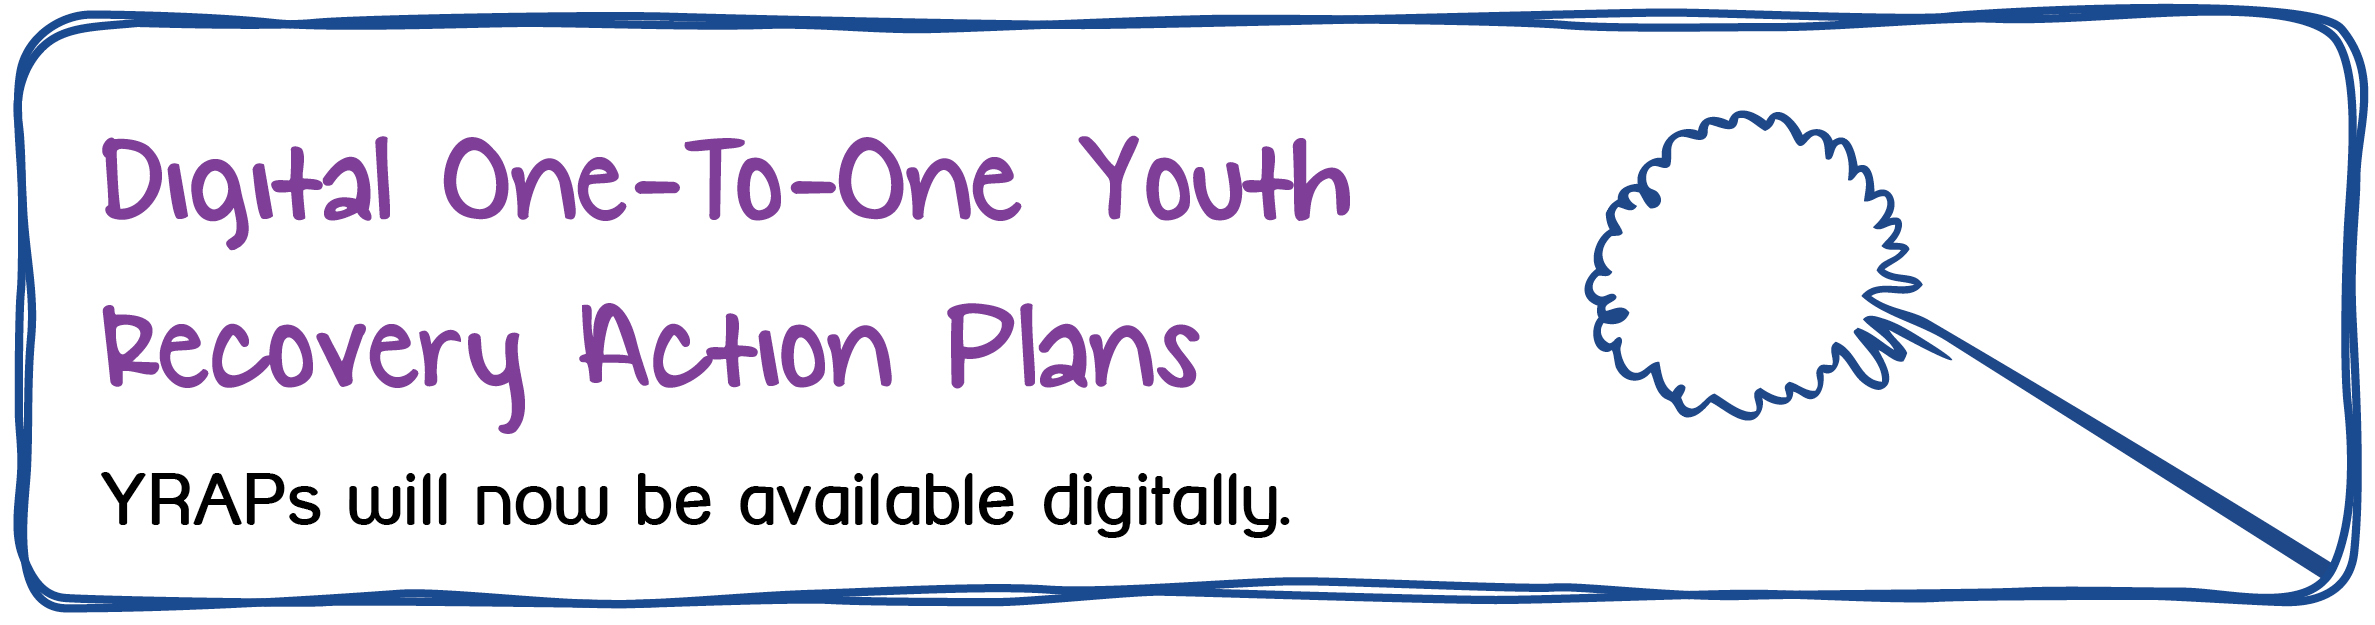 Digital One-To-One Youth Recovery Action Plans. YRAPs will now be available digitally.